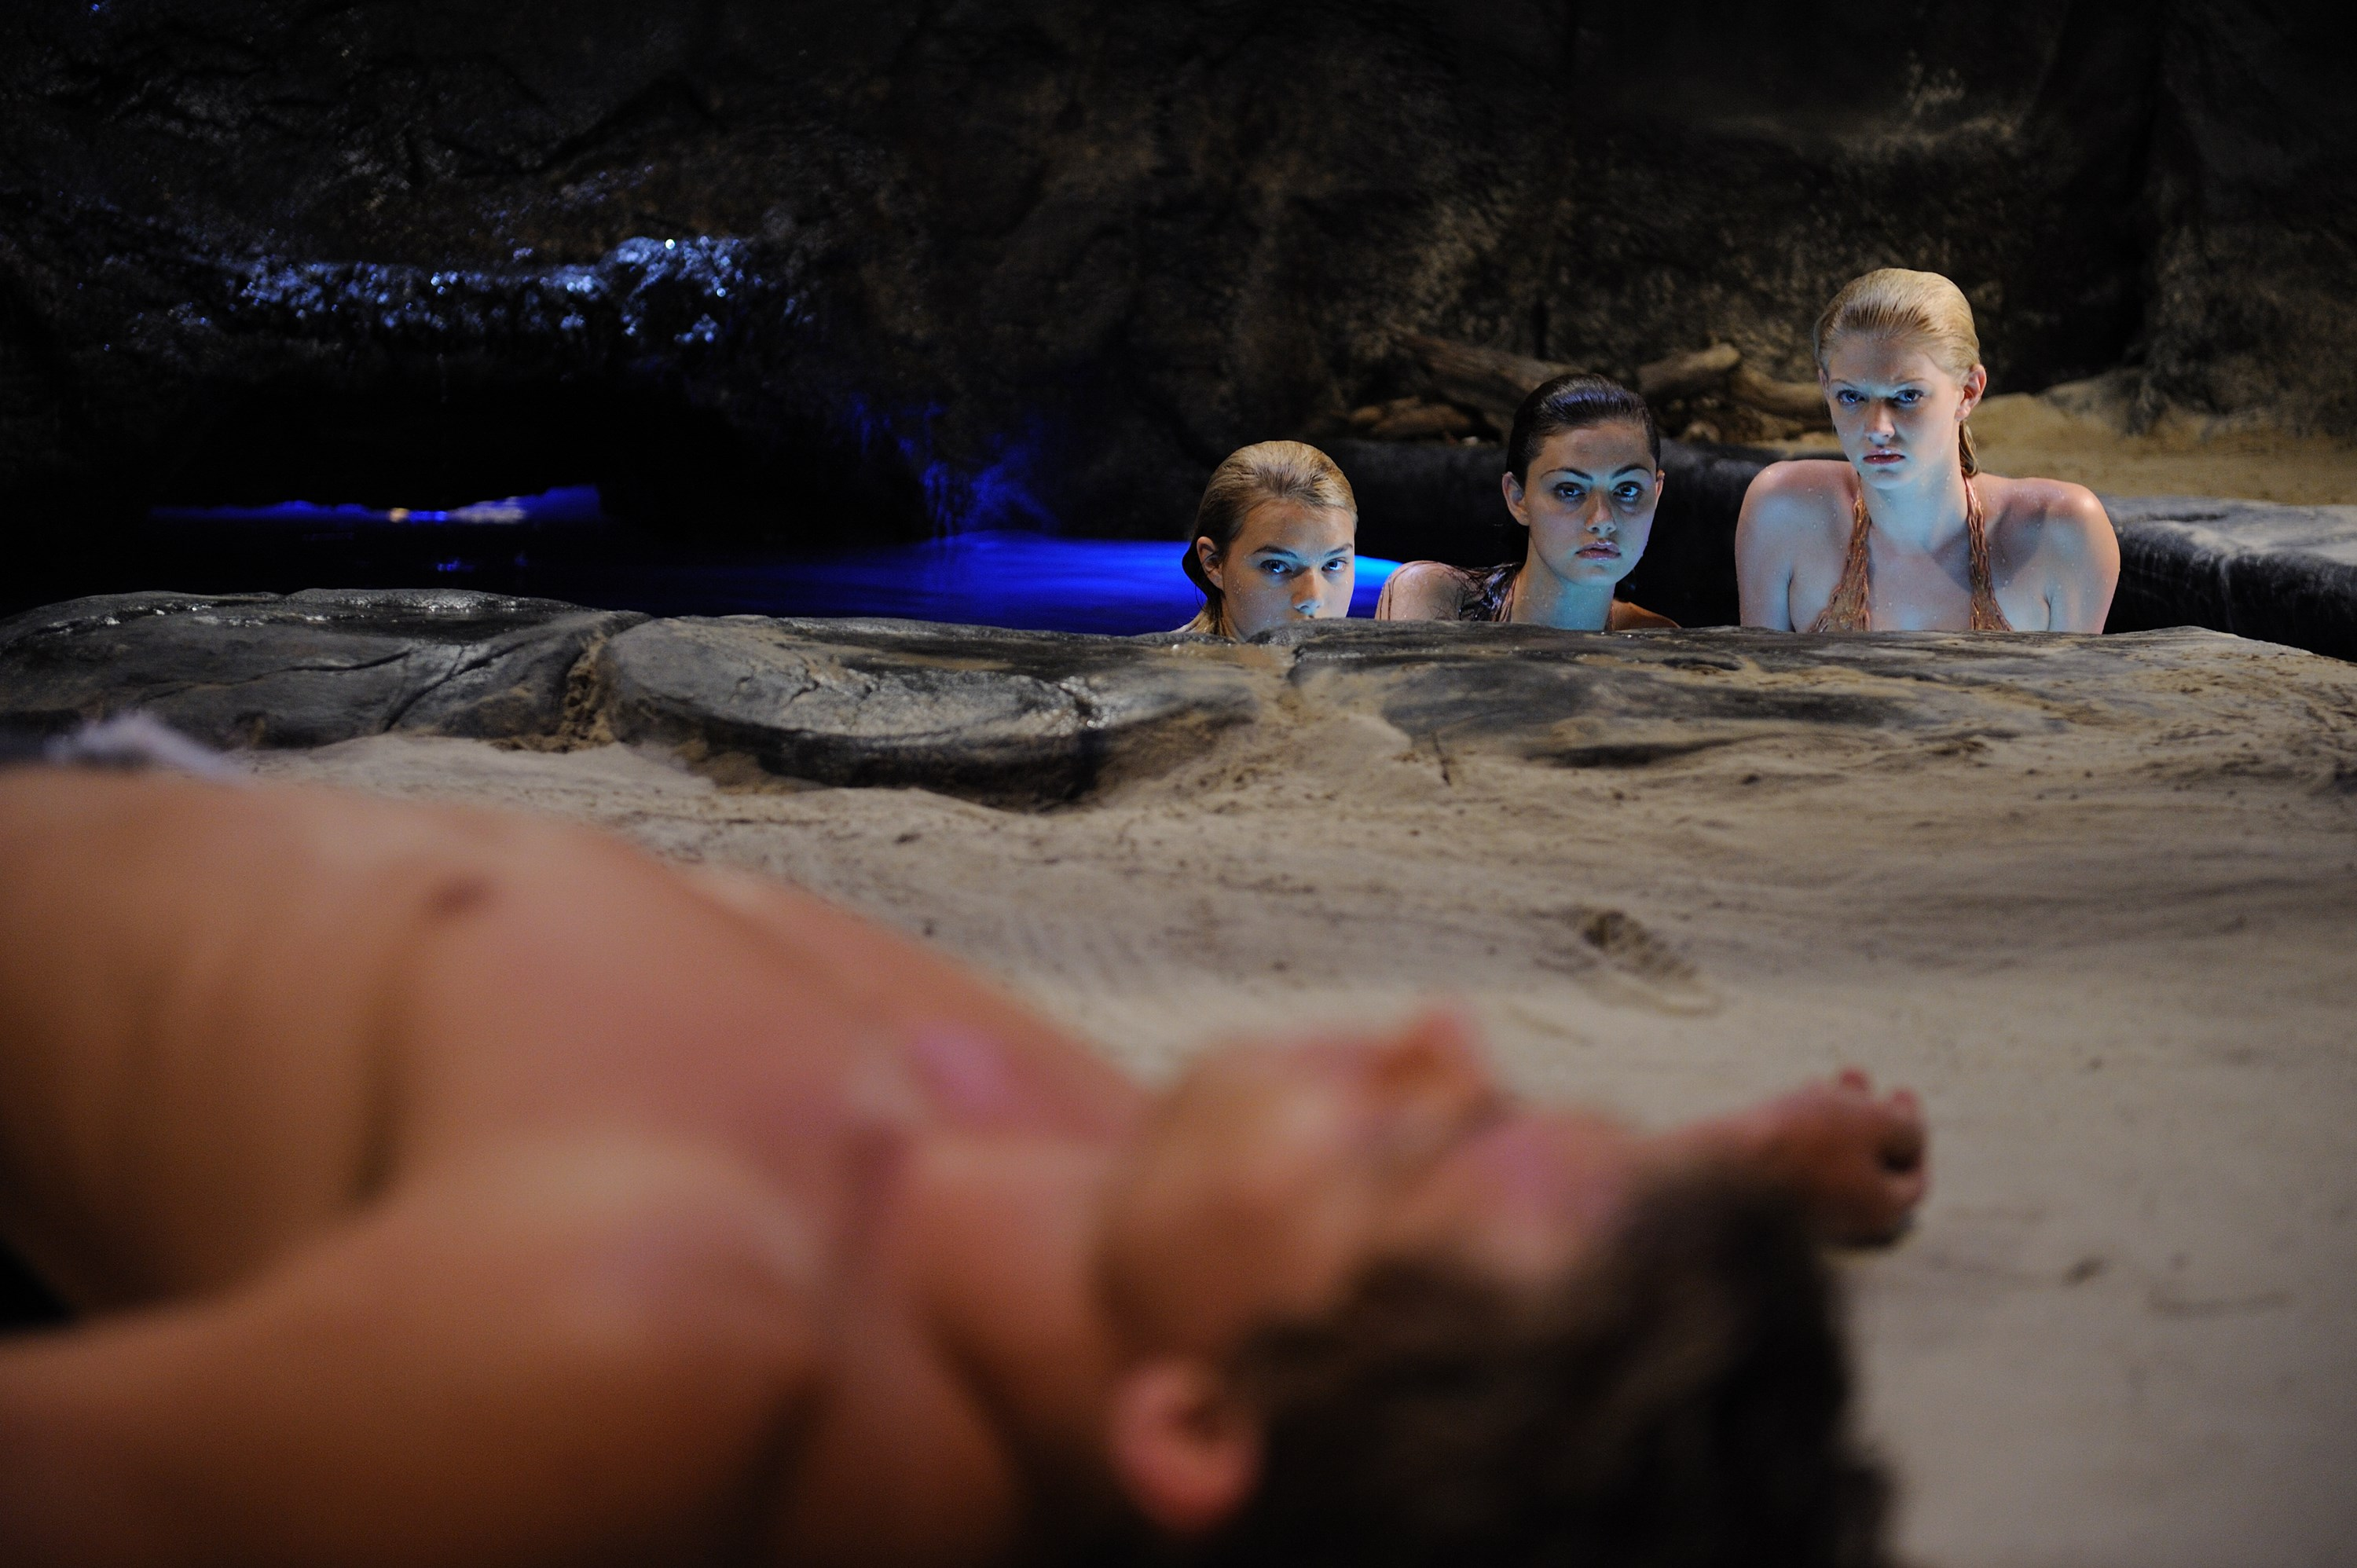 File:The Girls In The Moonpool And Unconscious Will.jpg